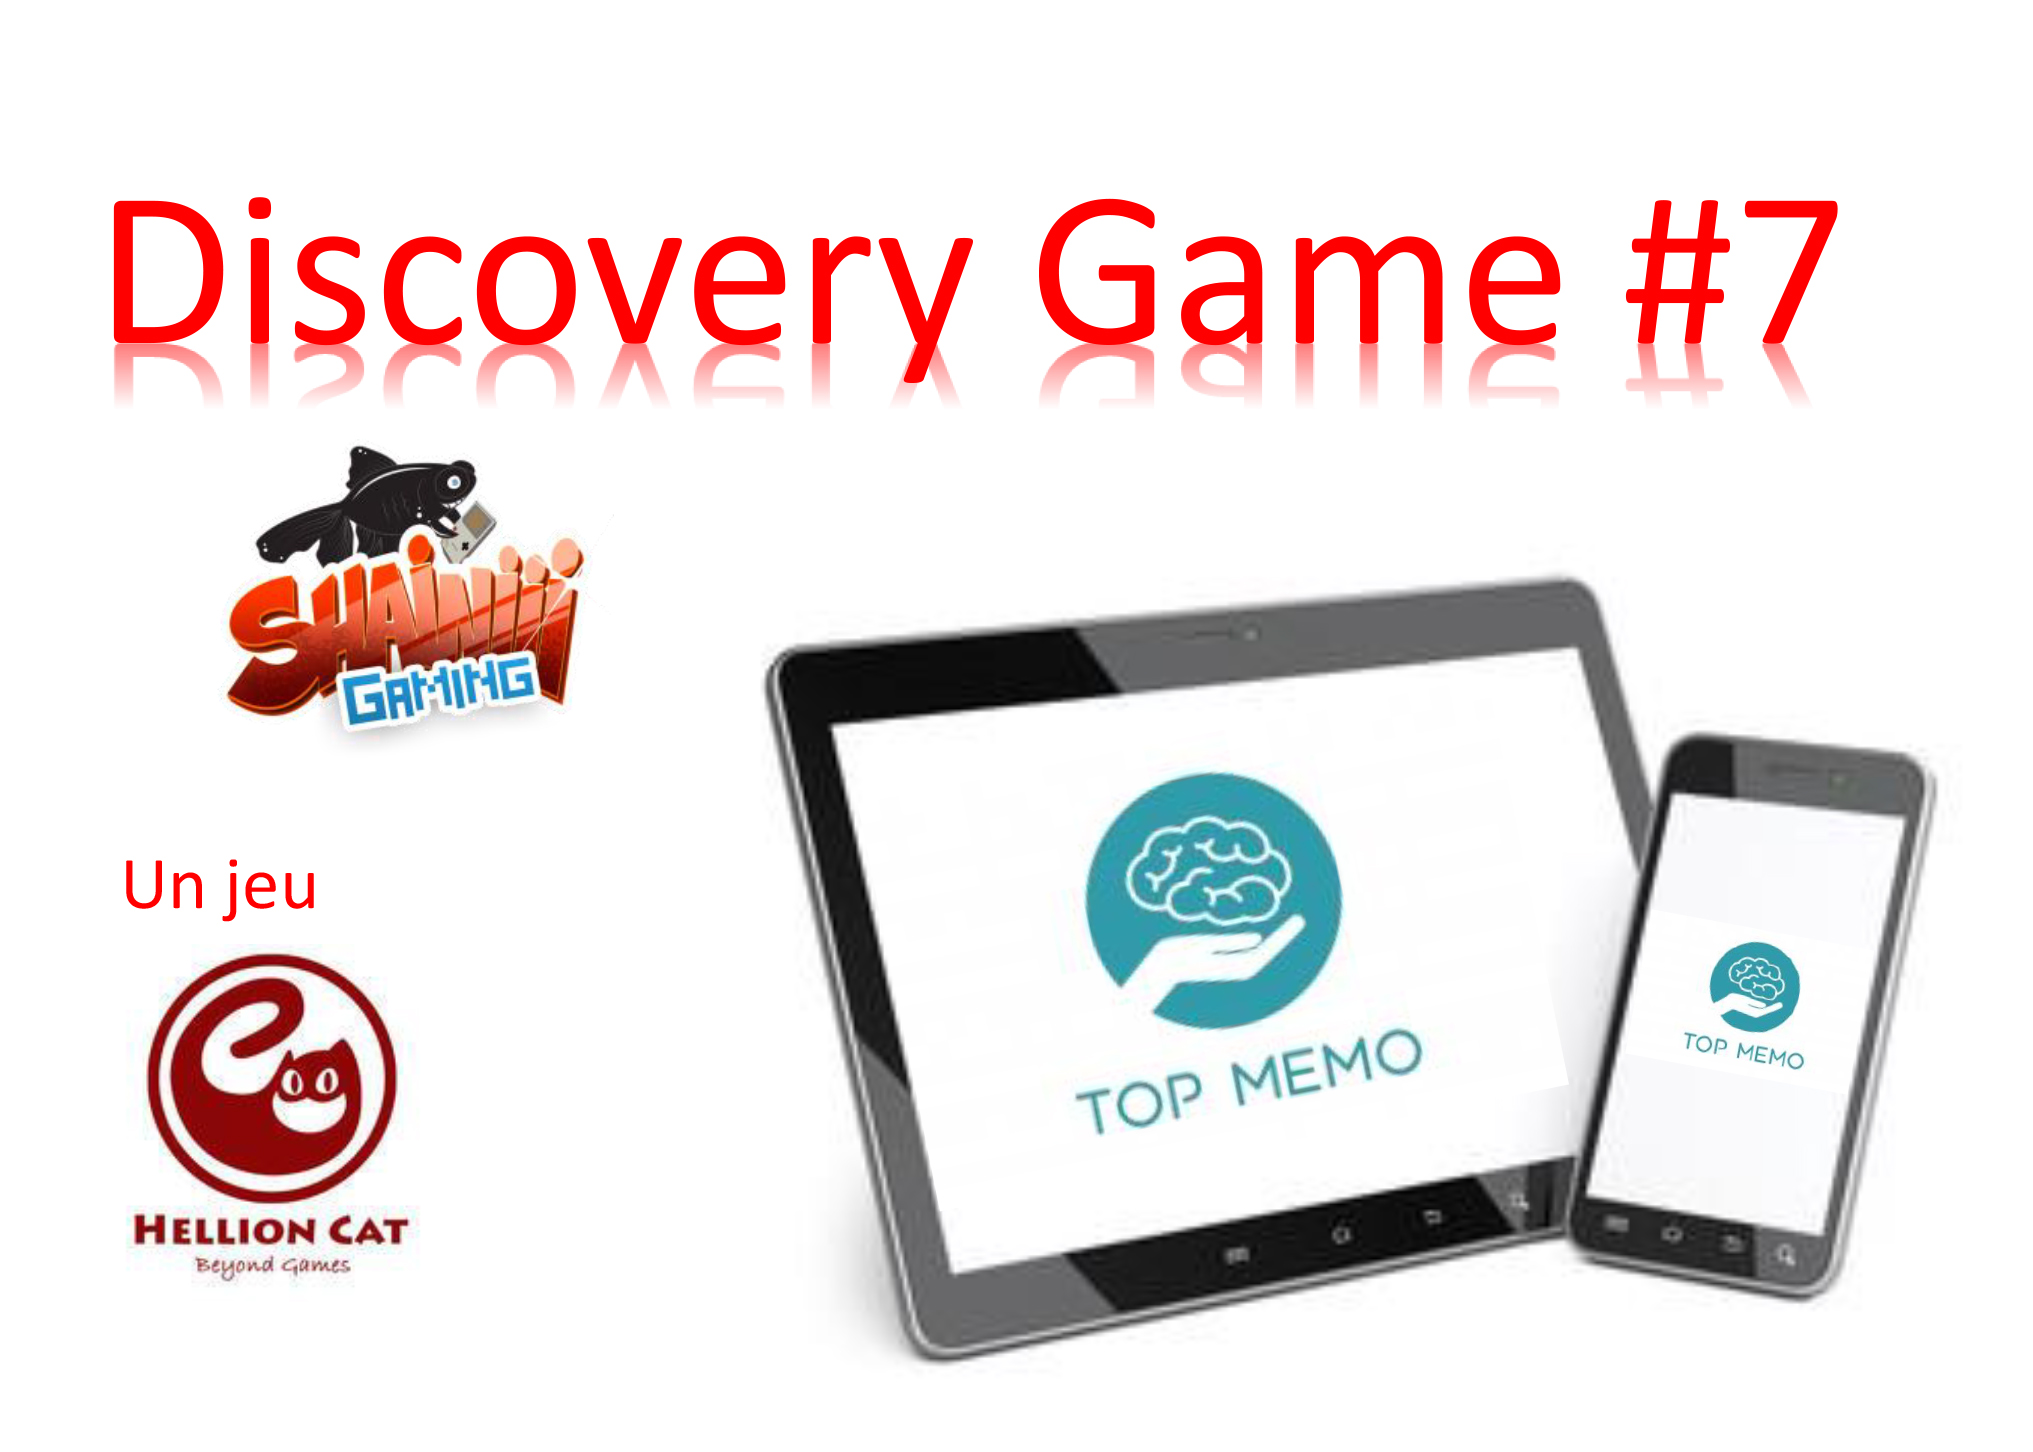 Discovery Game #7 Top Memo